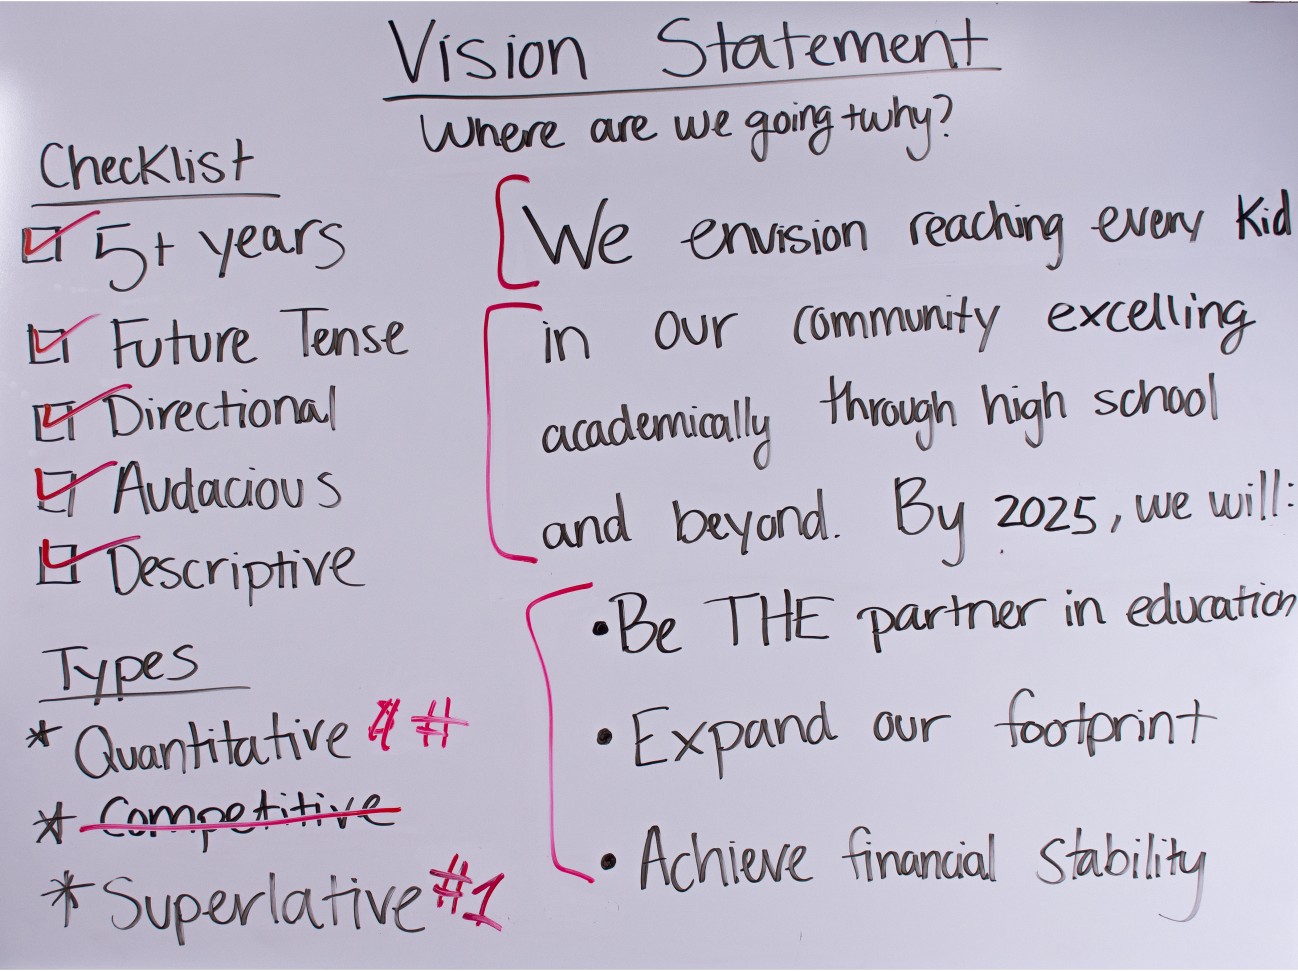 A great vision statement